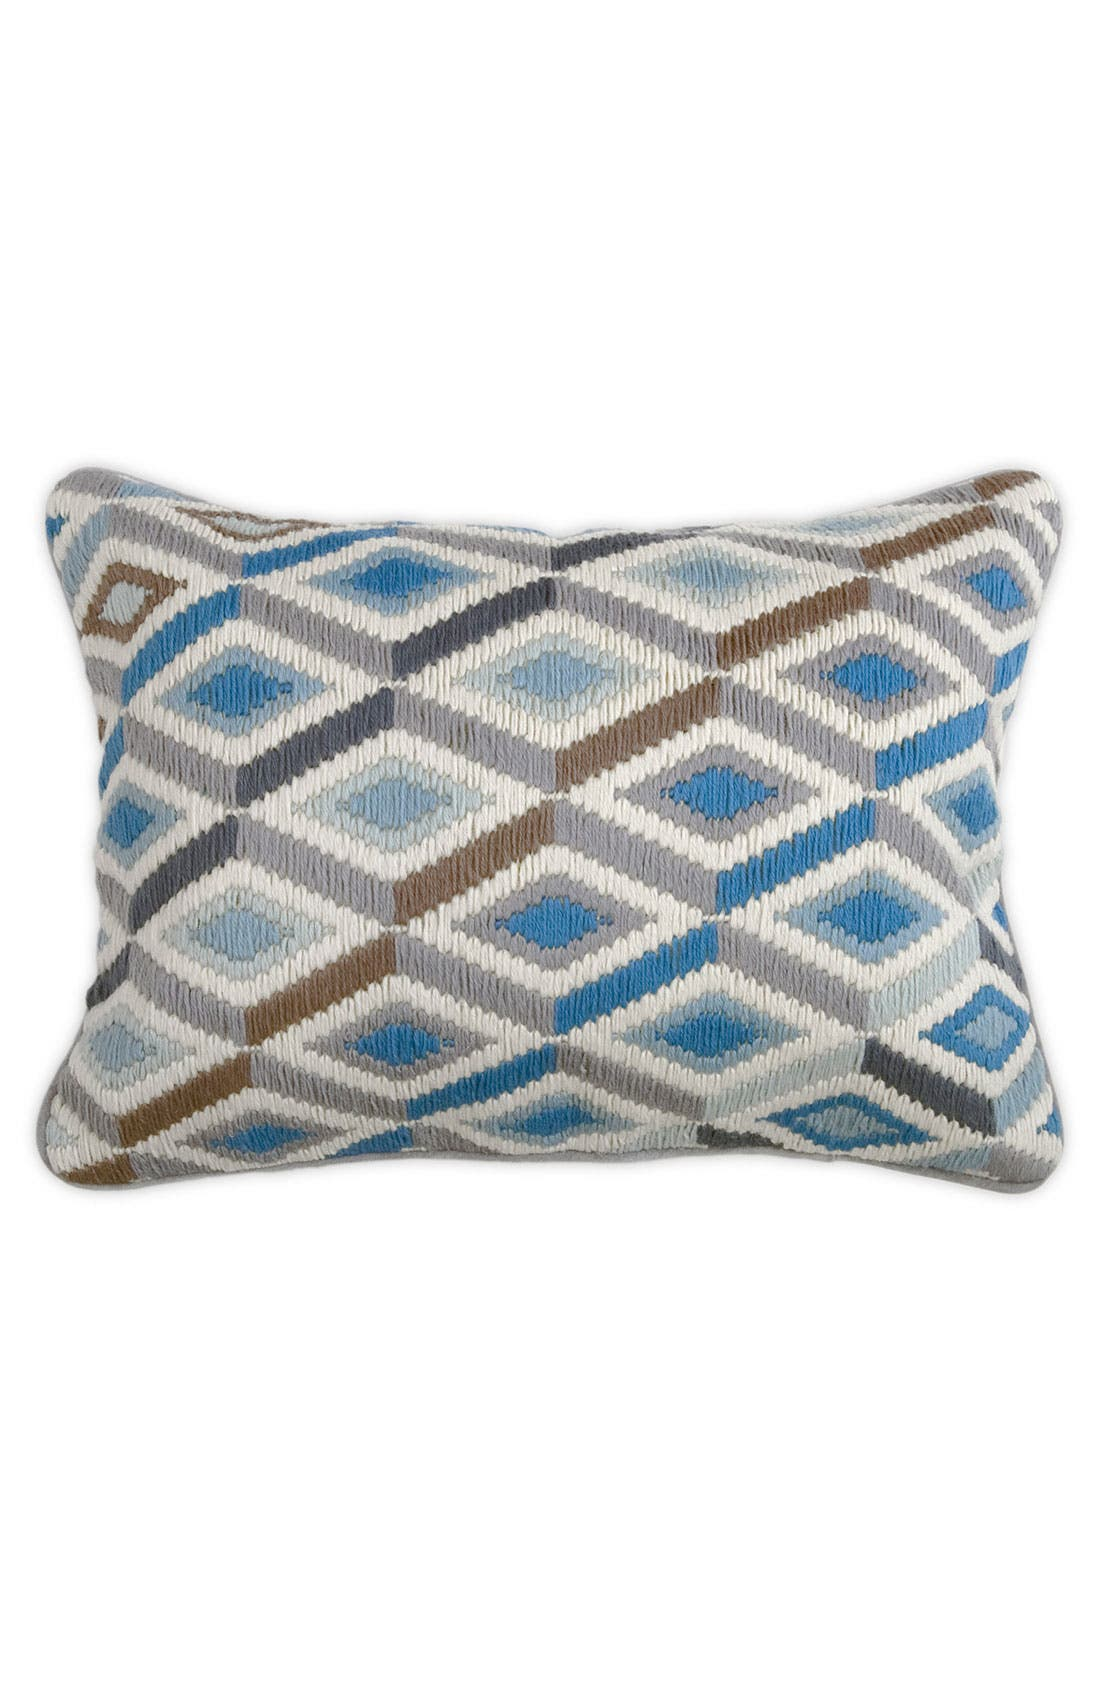 Main Image - Jonathan Adler 'Diamonds' Pillow